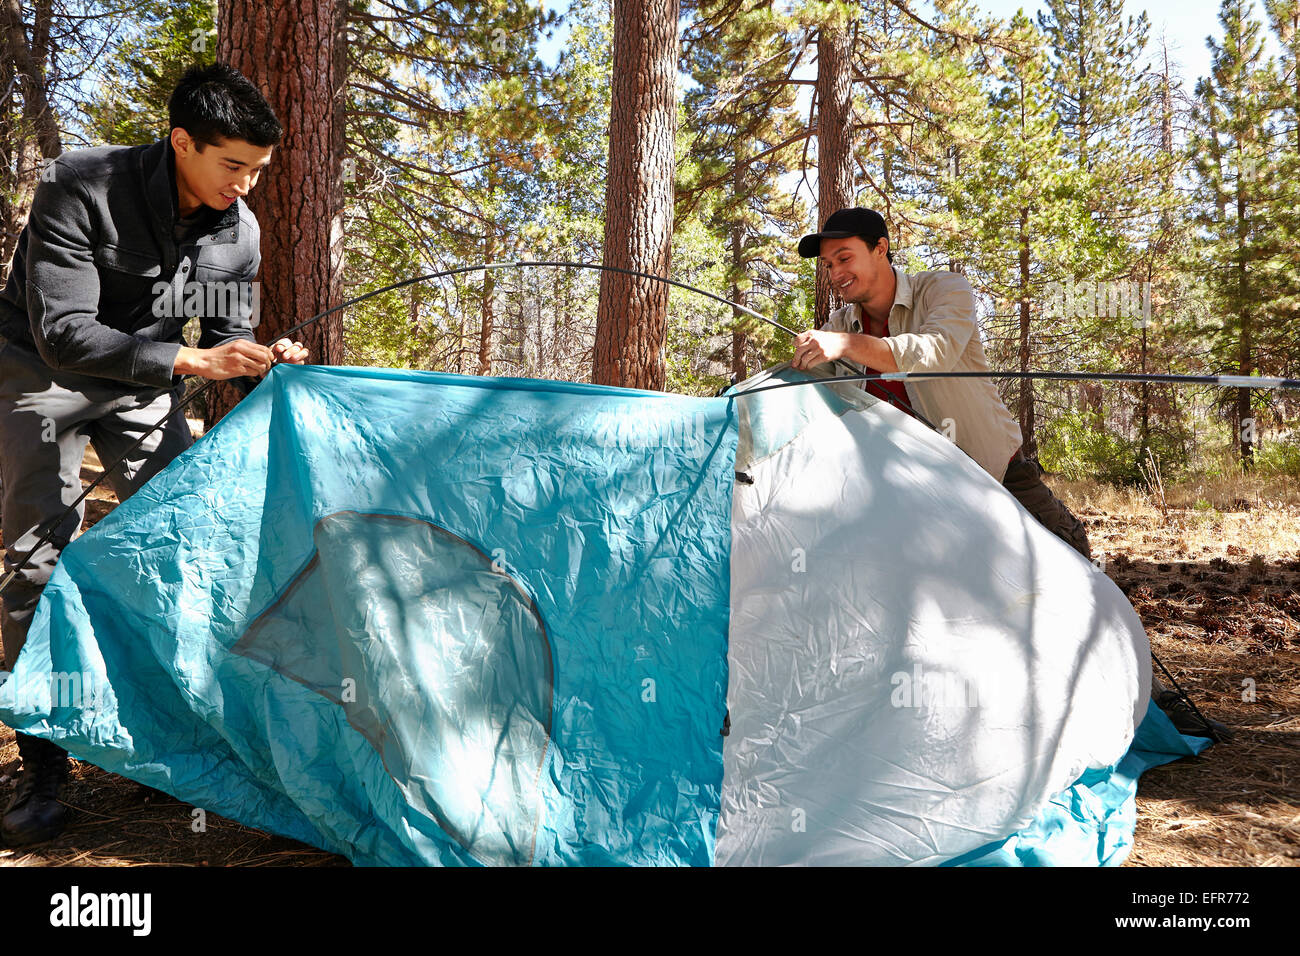 Two young men putting up tent in forest, Los Angeles, California, USA - Stock Image